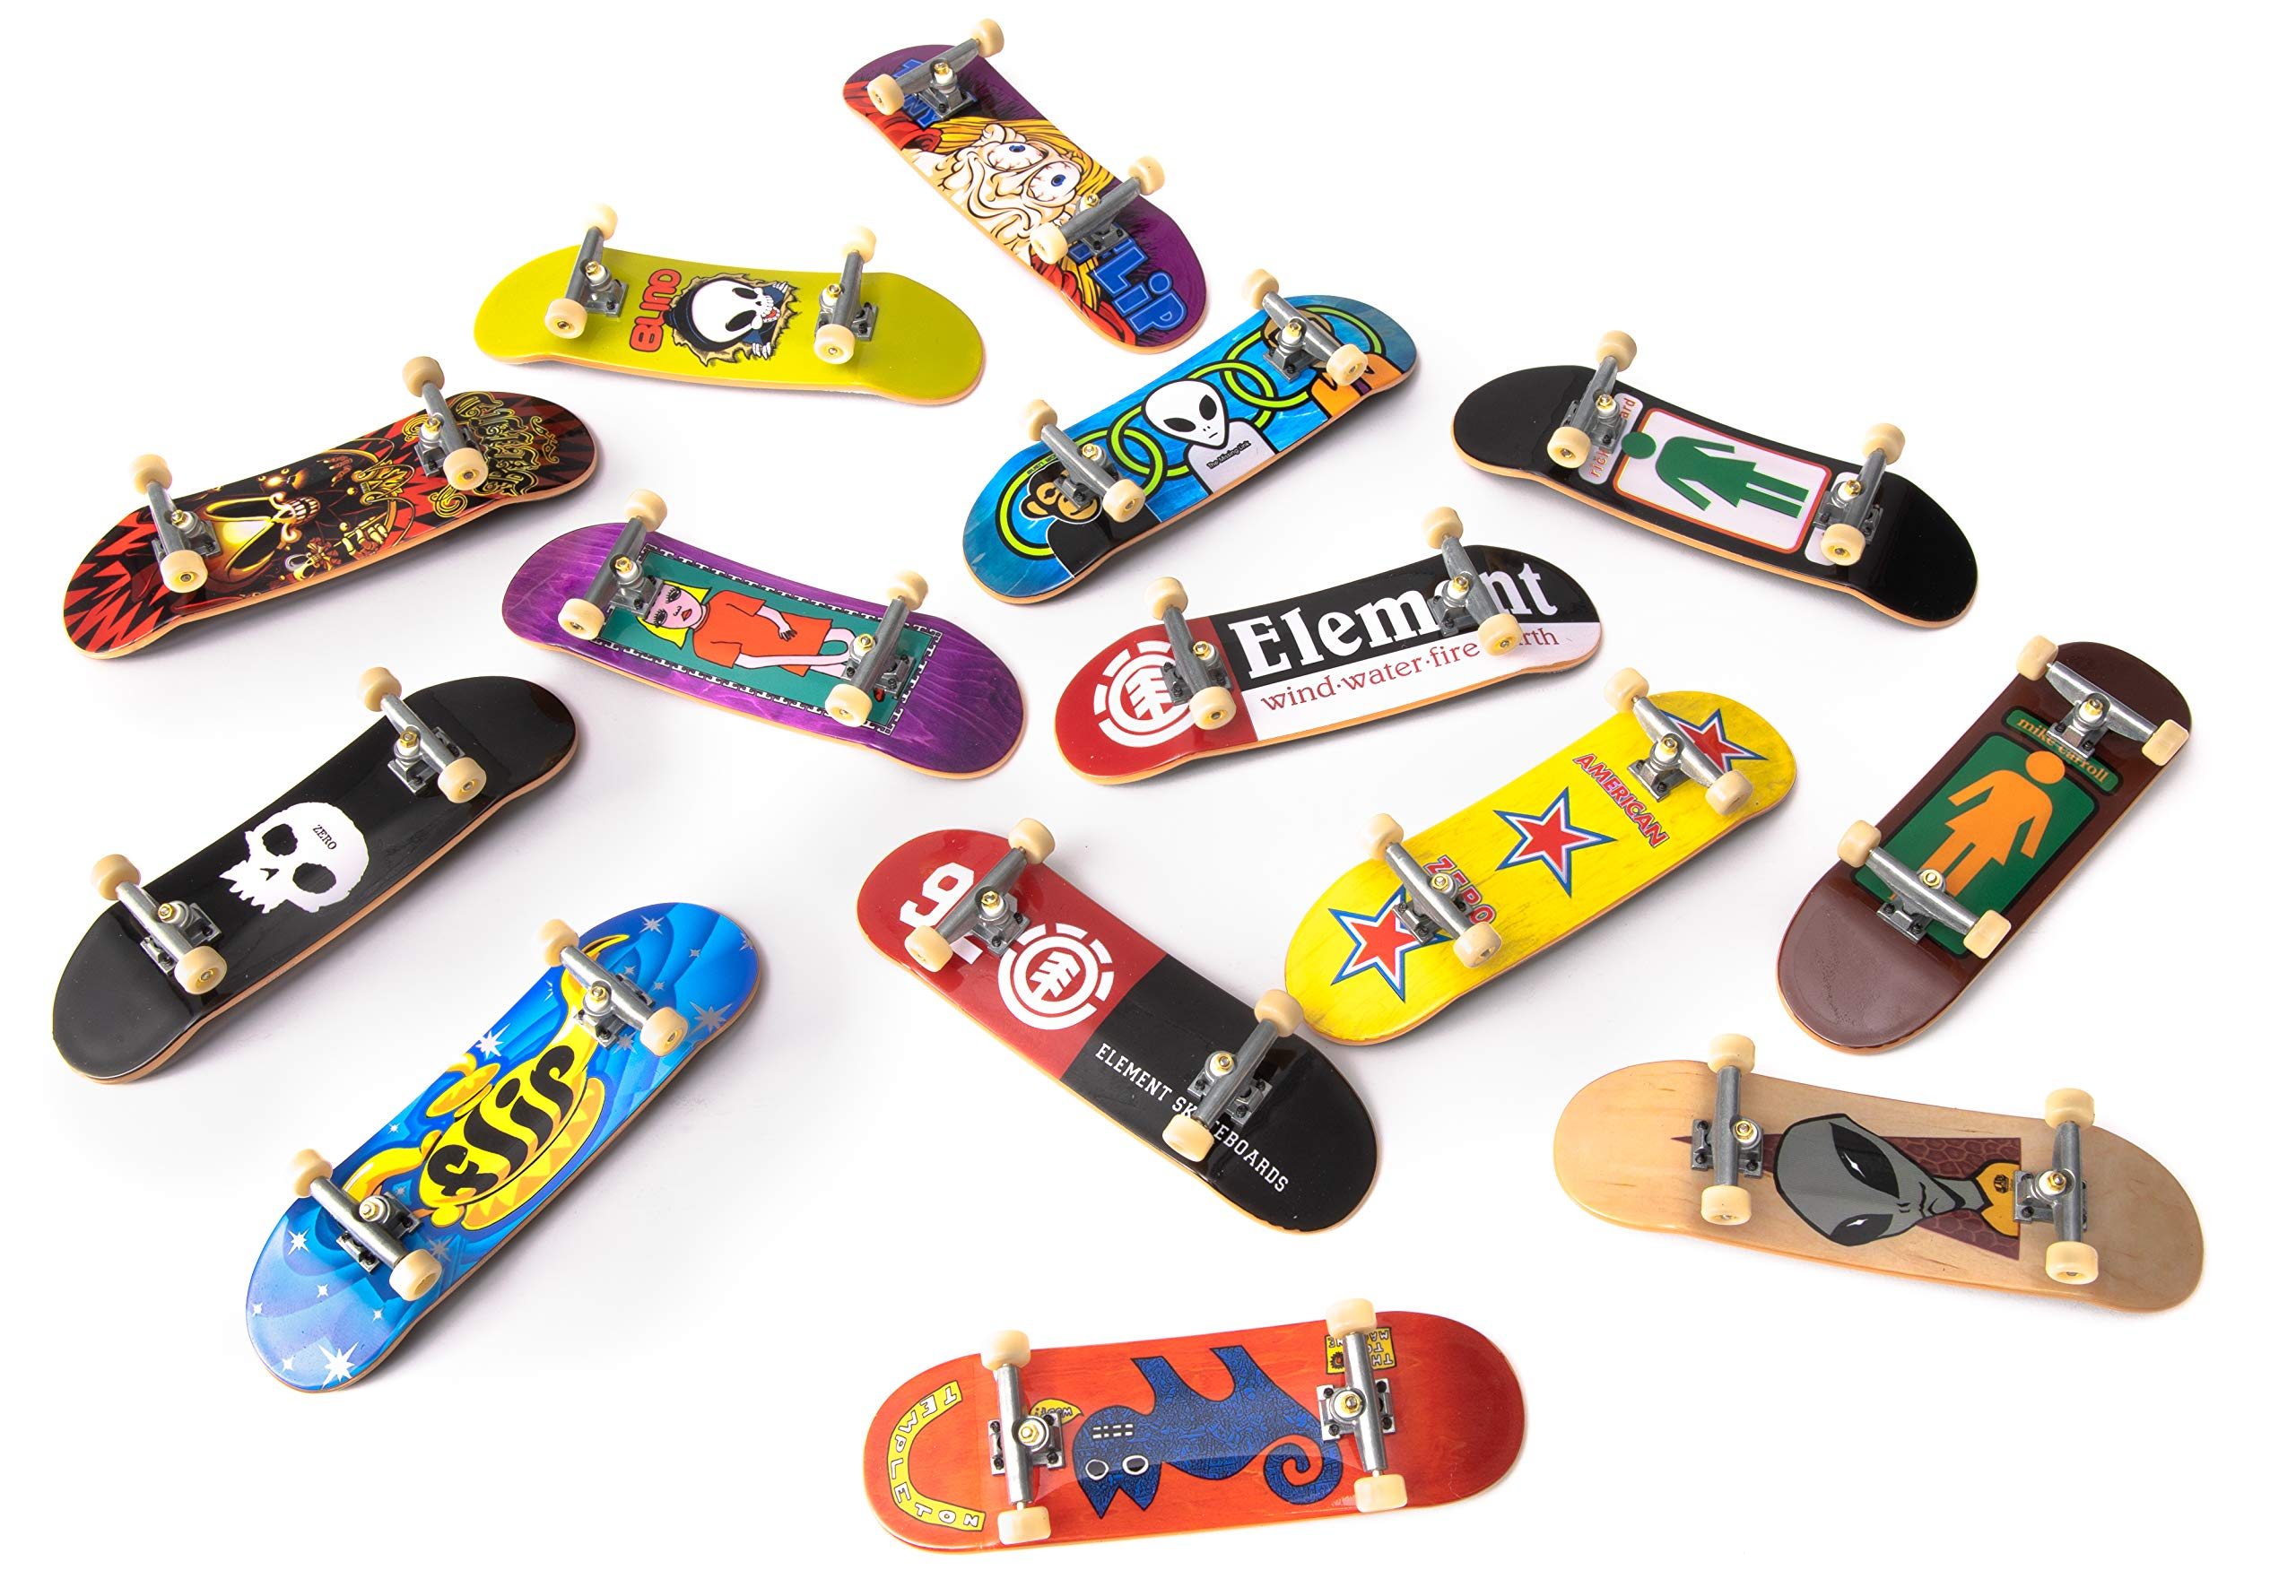 TECH DECK, Sk8 Factory DLX 14 Pack Fingerboards, Golden Era 90's Edition by TECH DECK